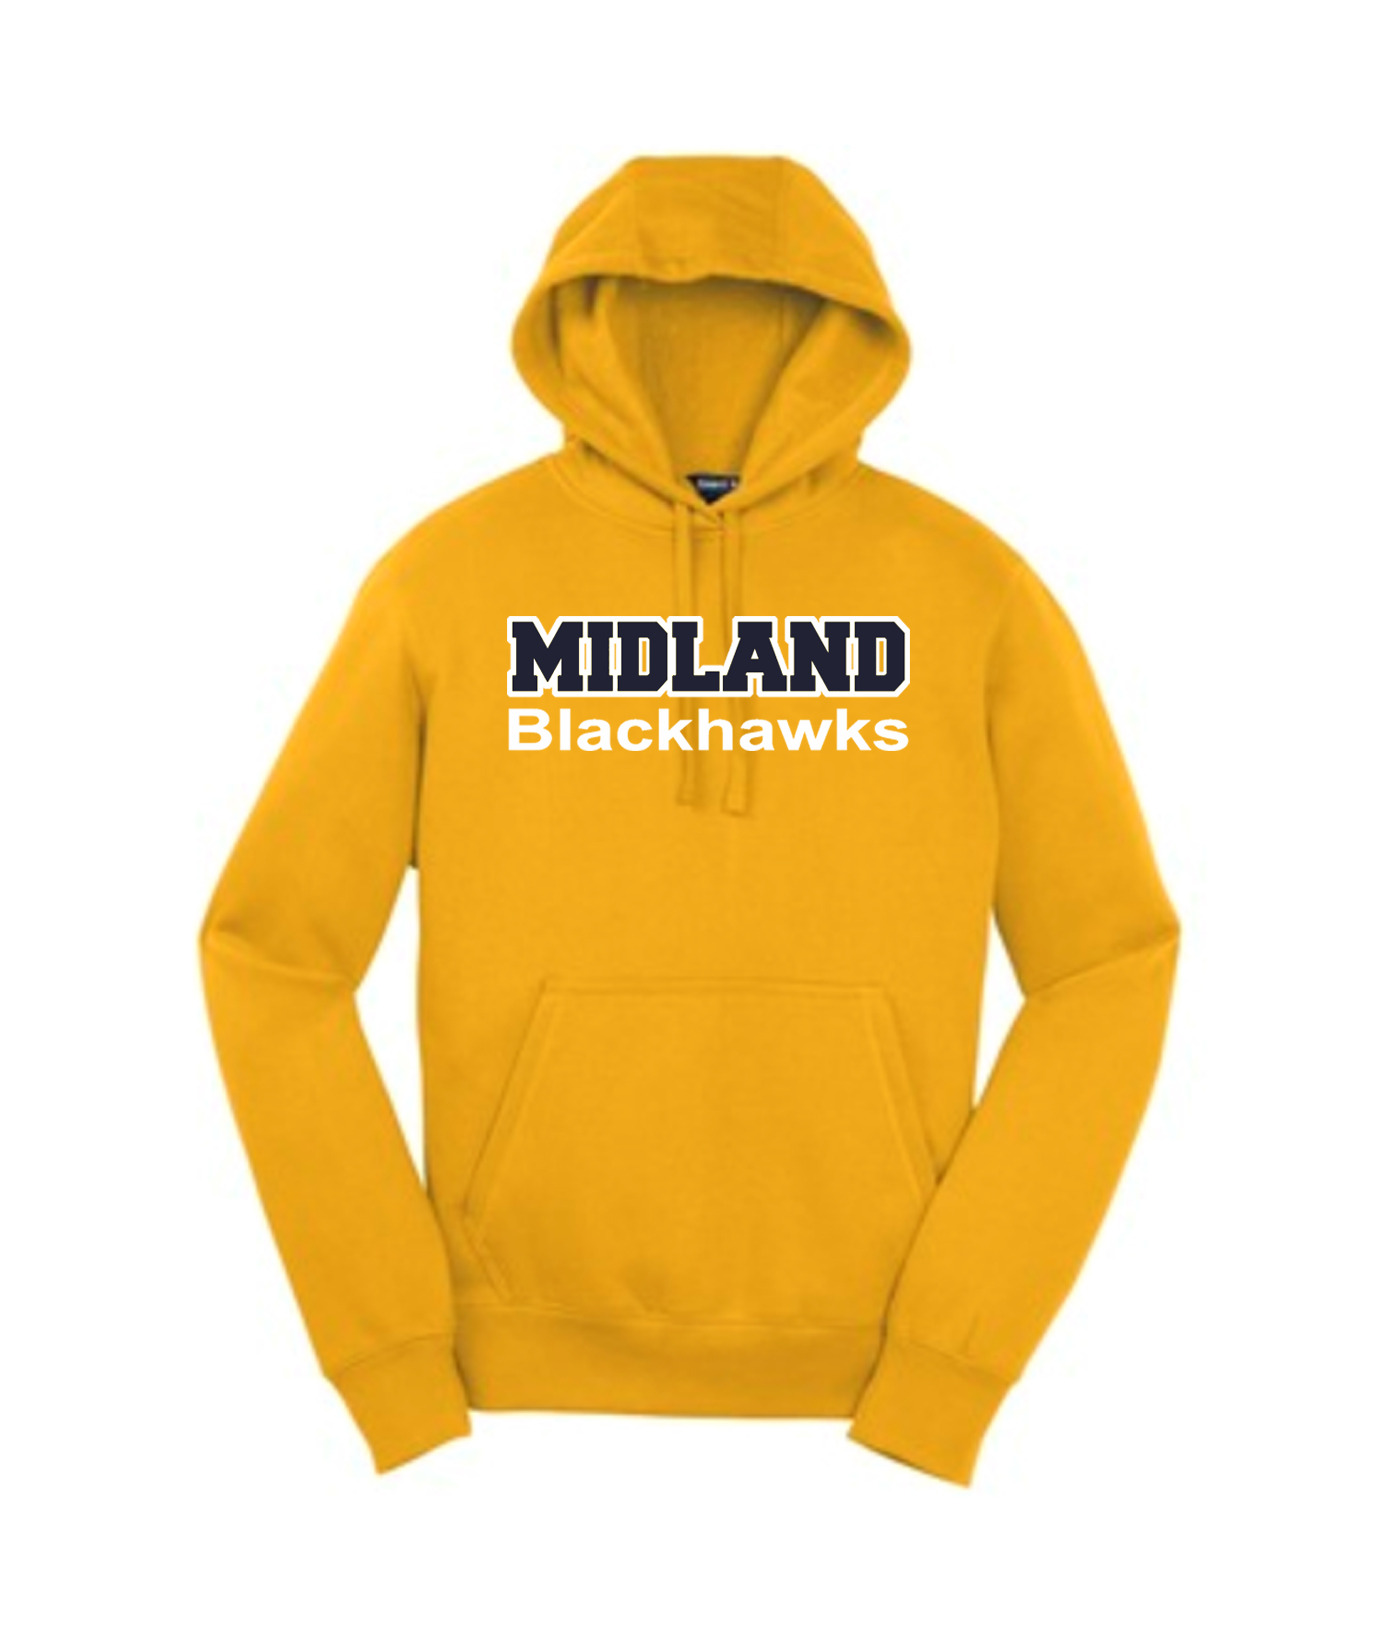 Sport-Tek Gold Pullover Hooded Sweatshirt Color Midland Blackhawks White Outline Navy Inside